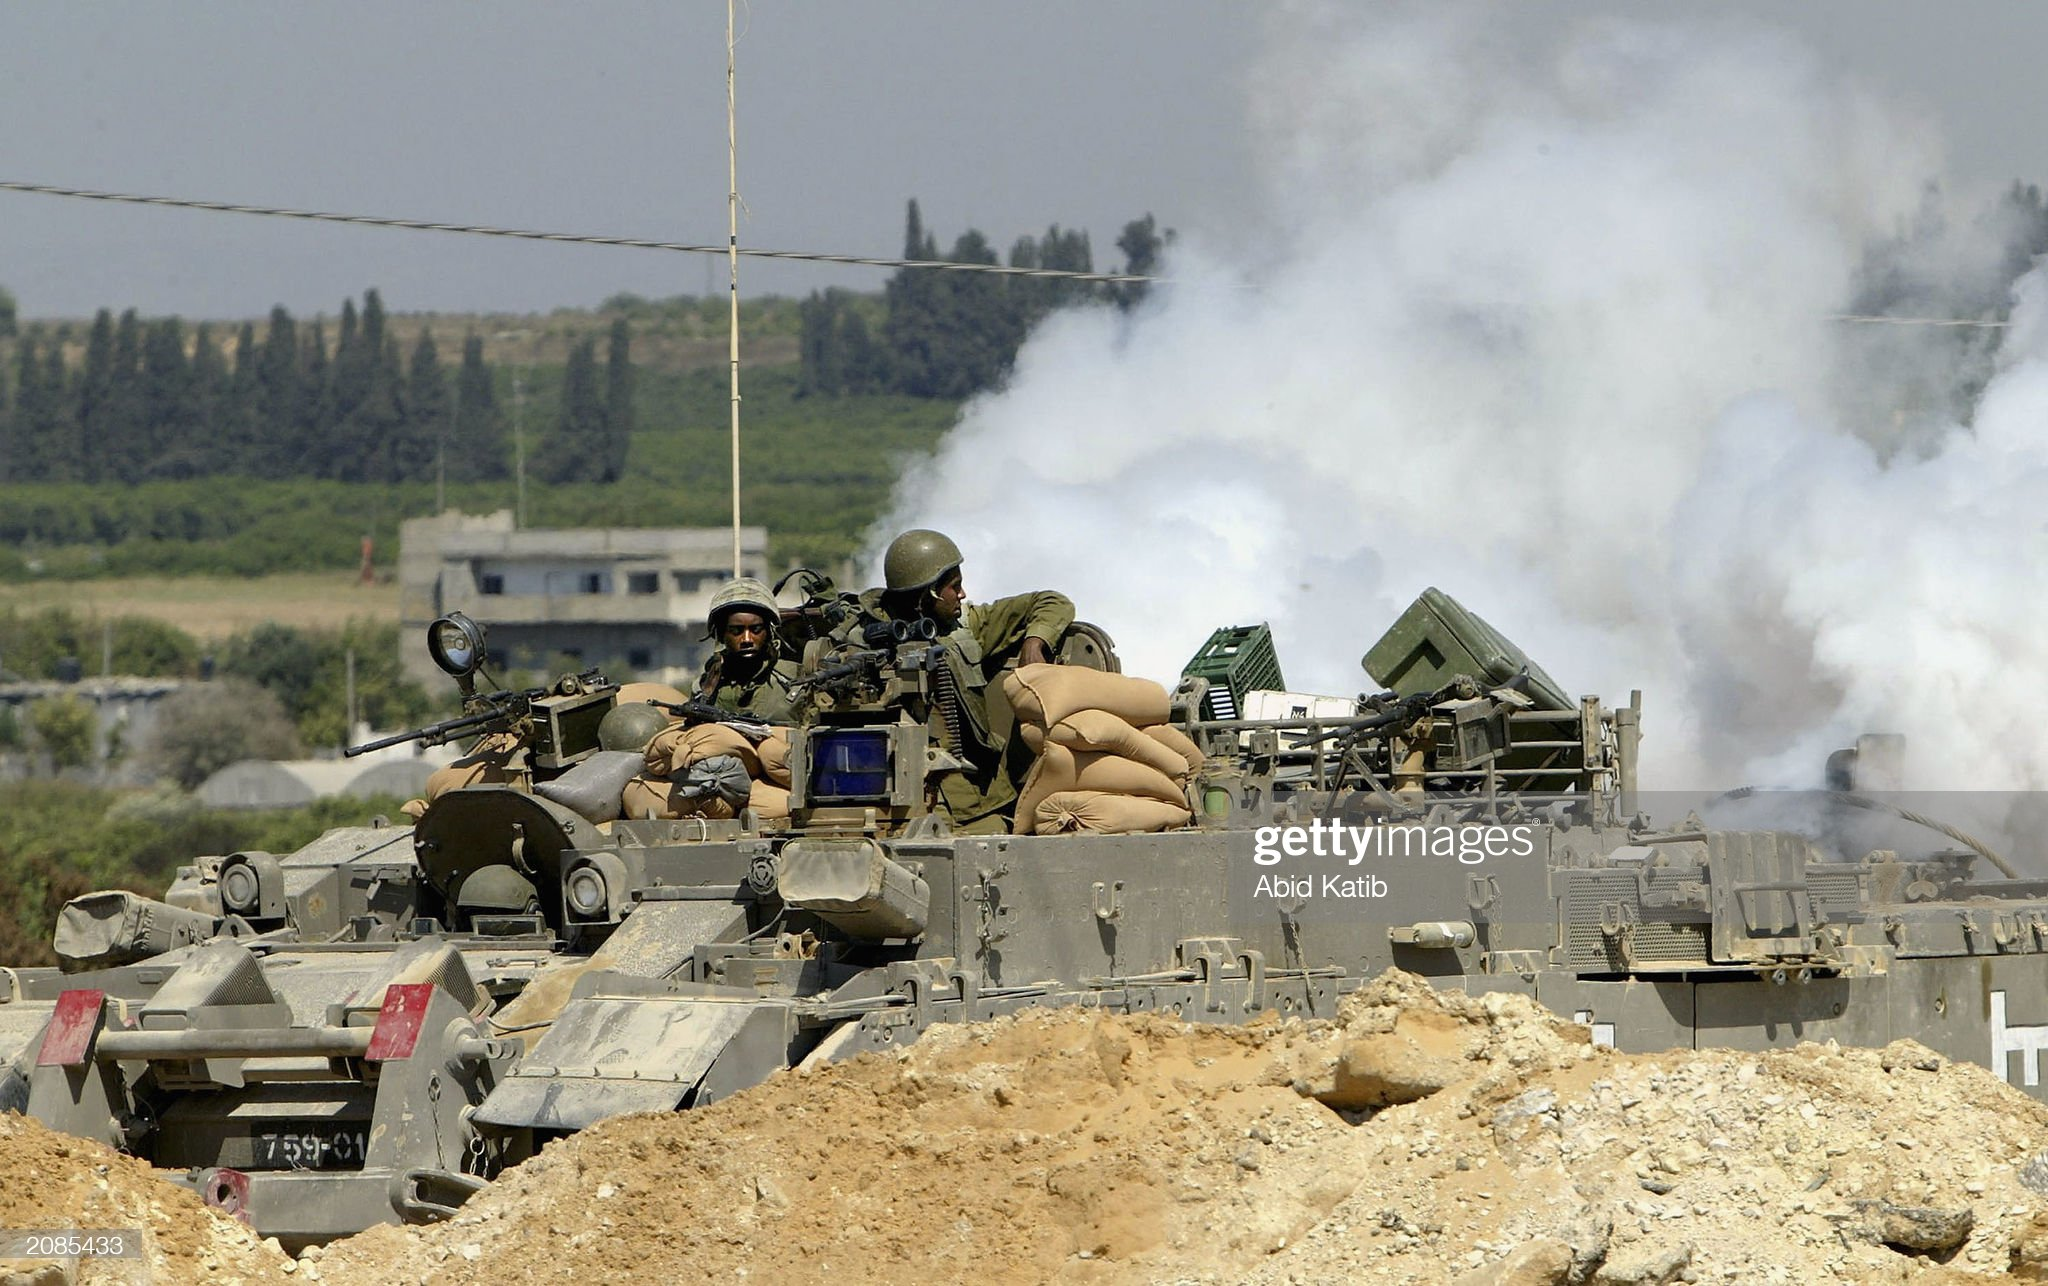 https://media.gettyimages.com/photos/two-israeli-soldiers-sit-in-their-tank-as-smoke-rises-from-the-rear-picture-id2085433?s=2048x2048